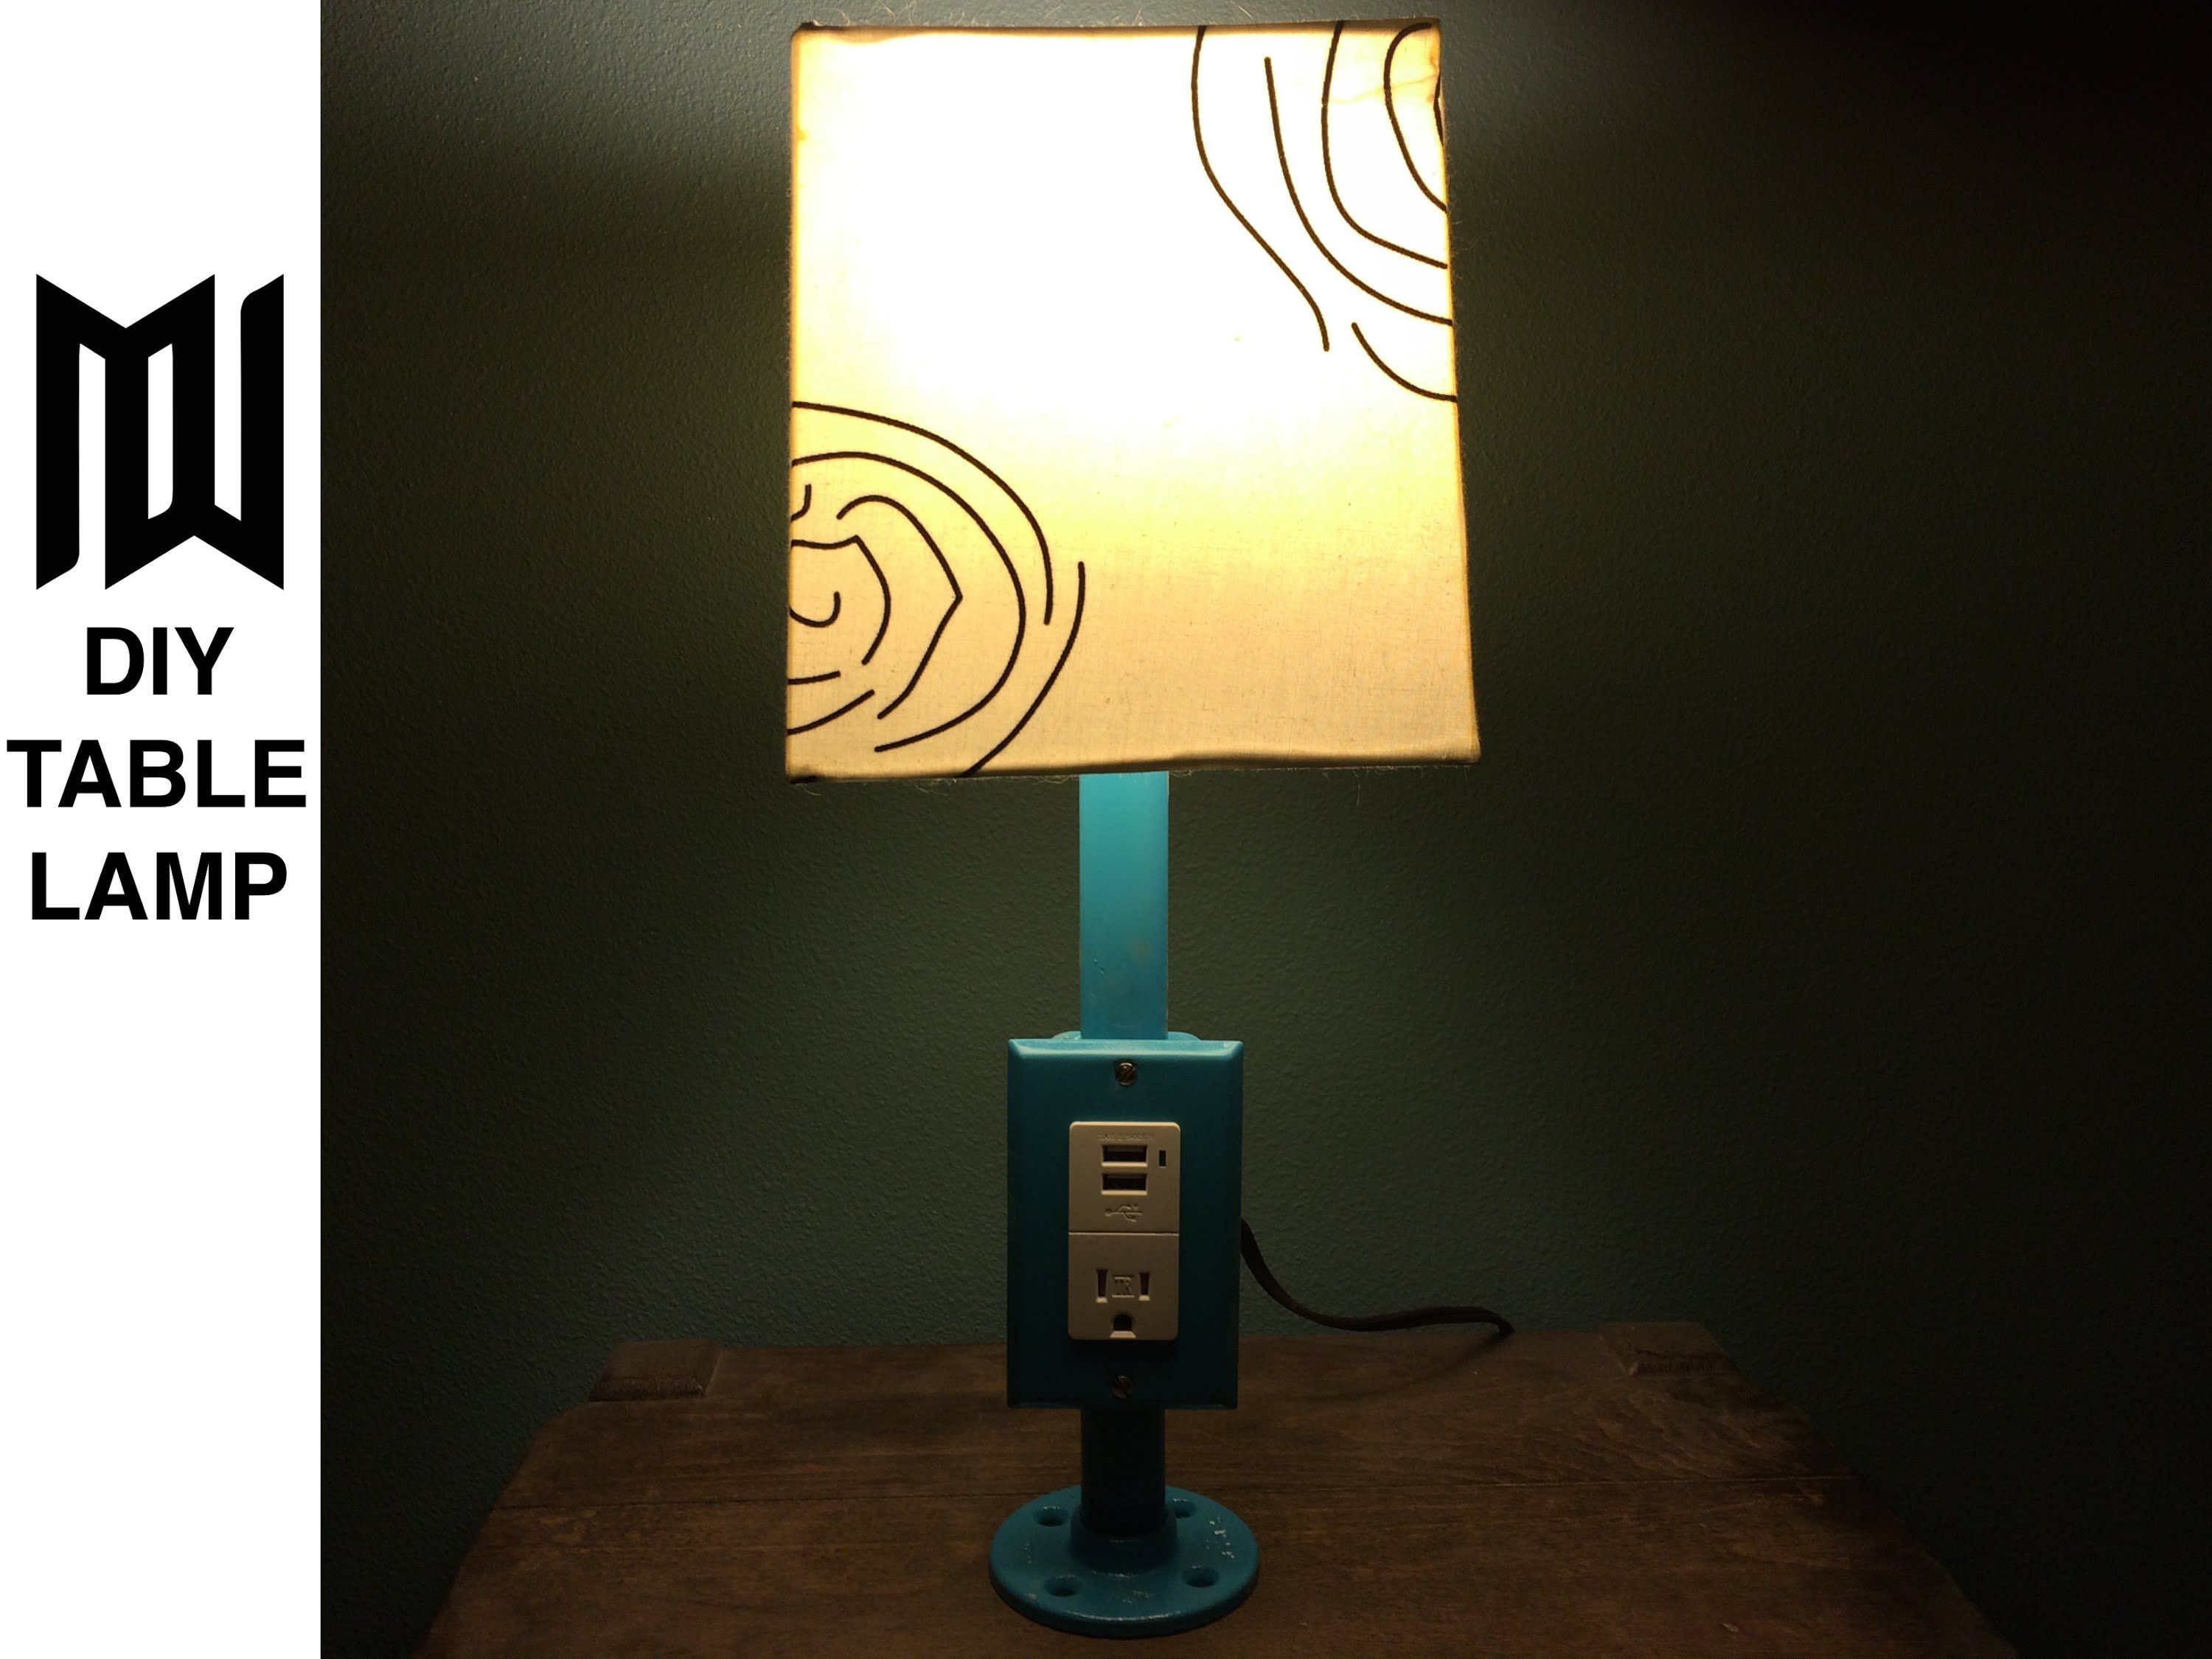 Make in a Minute - Build an Easy DIY Outlet Lamp with USB Charging ...